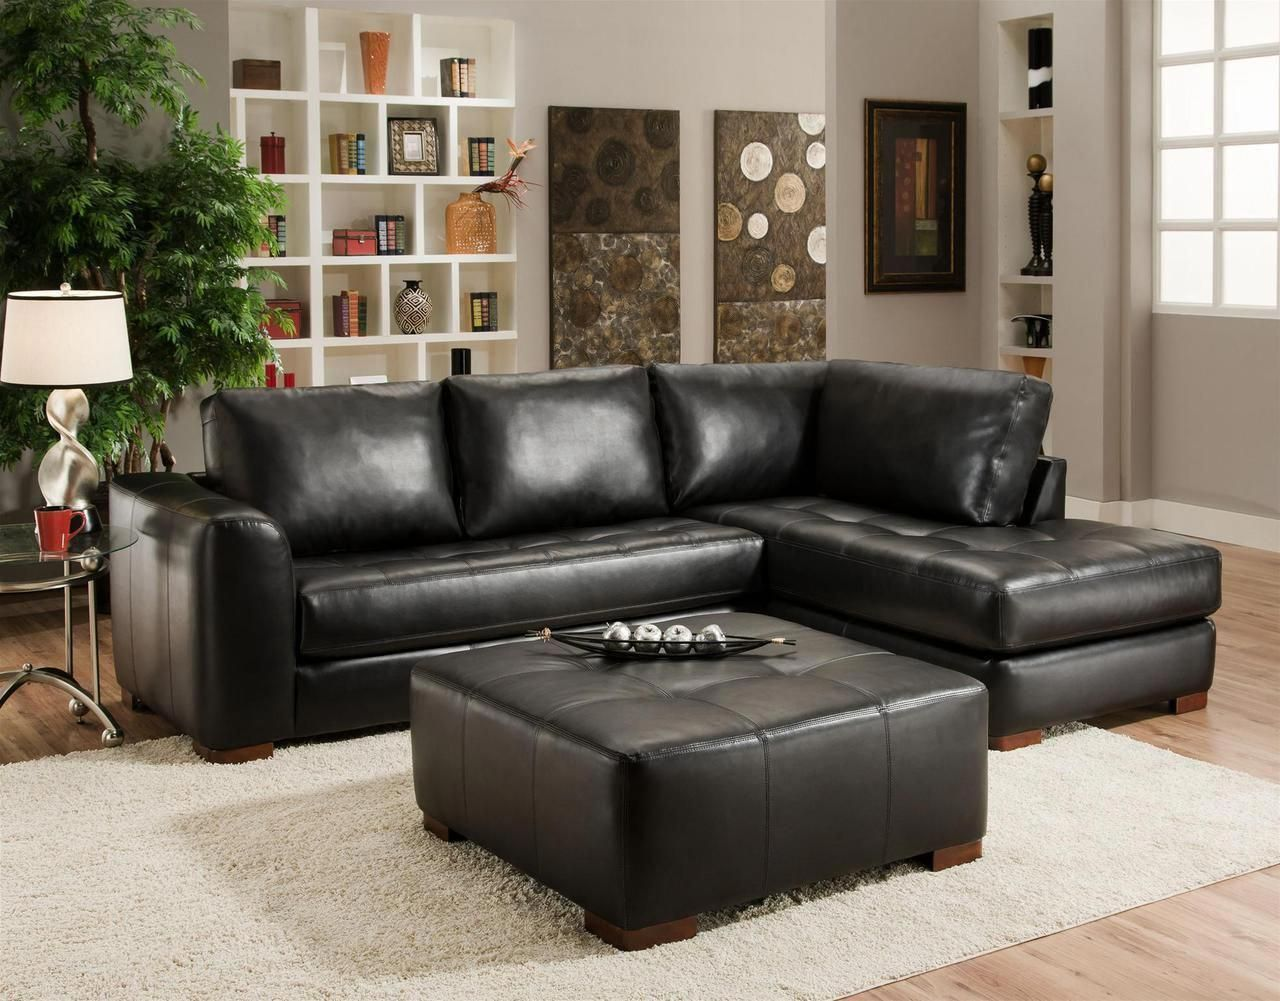 albany leather sofa auctions uk 275 capri black sectional by savvy discount furniture discountfurniture